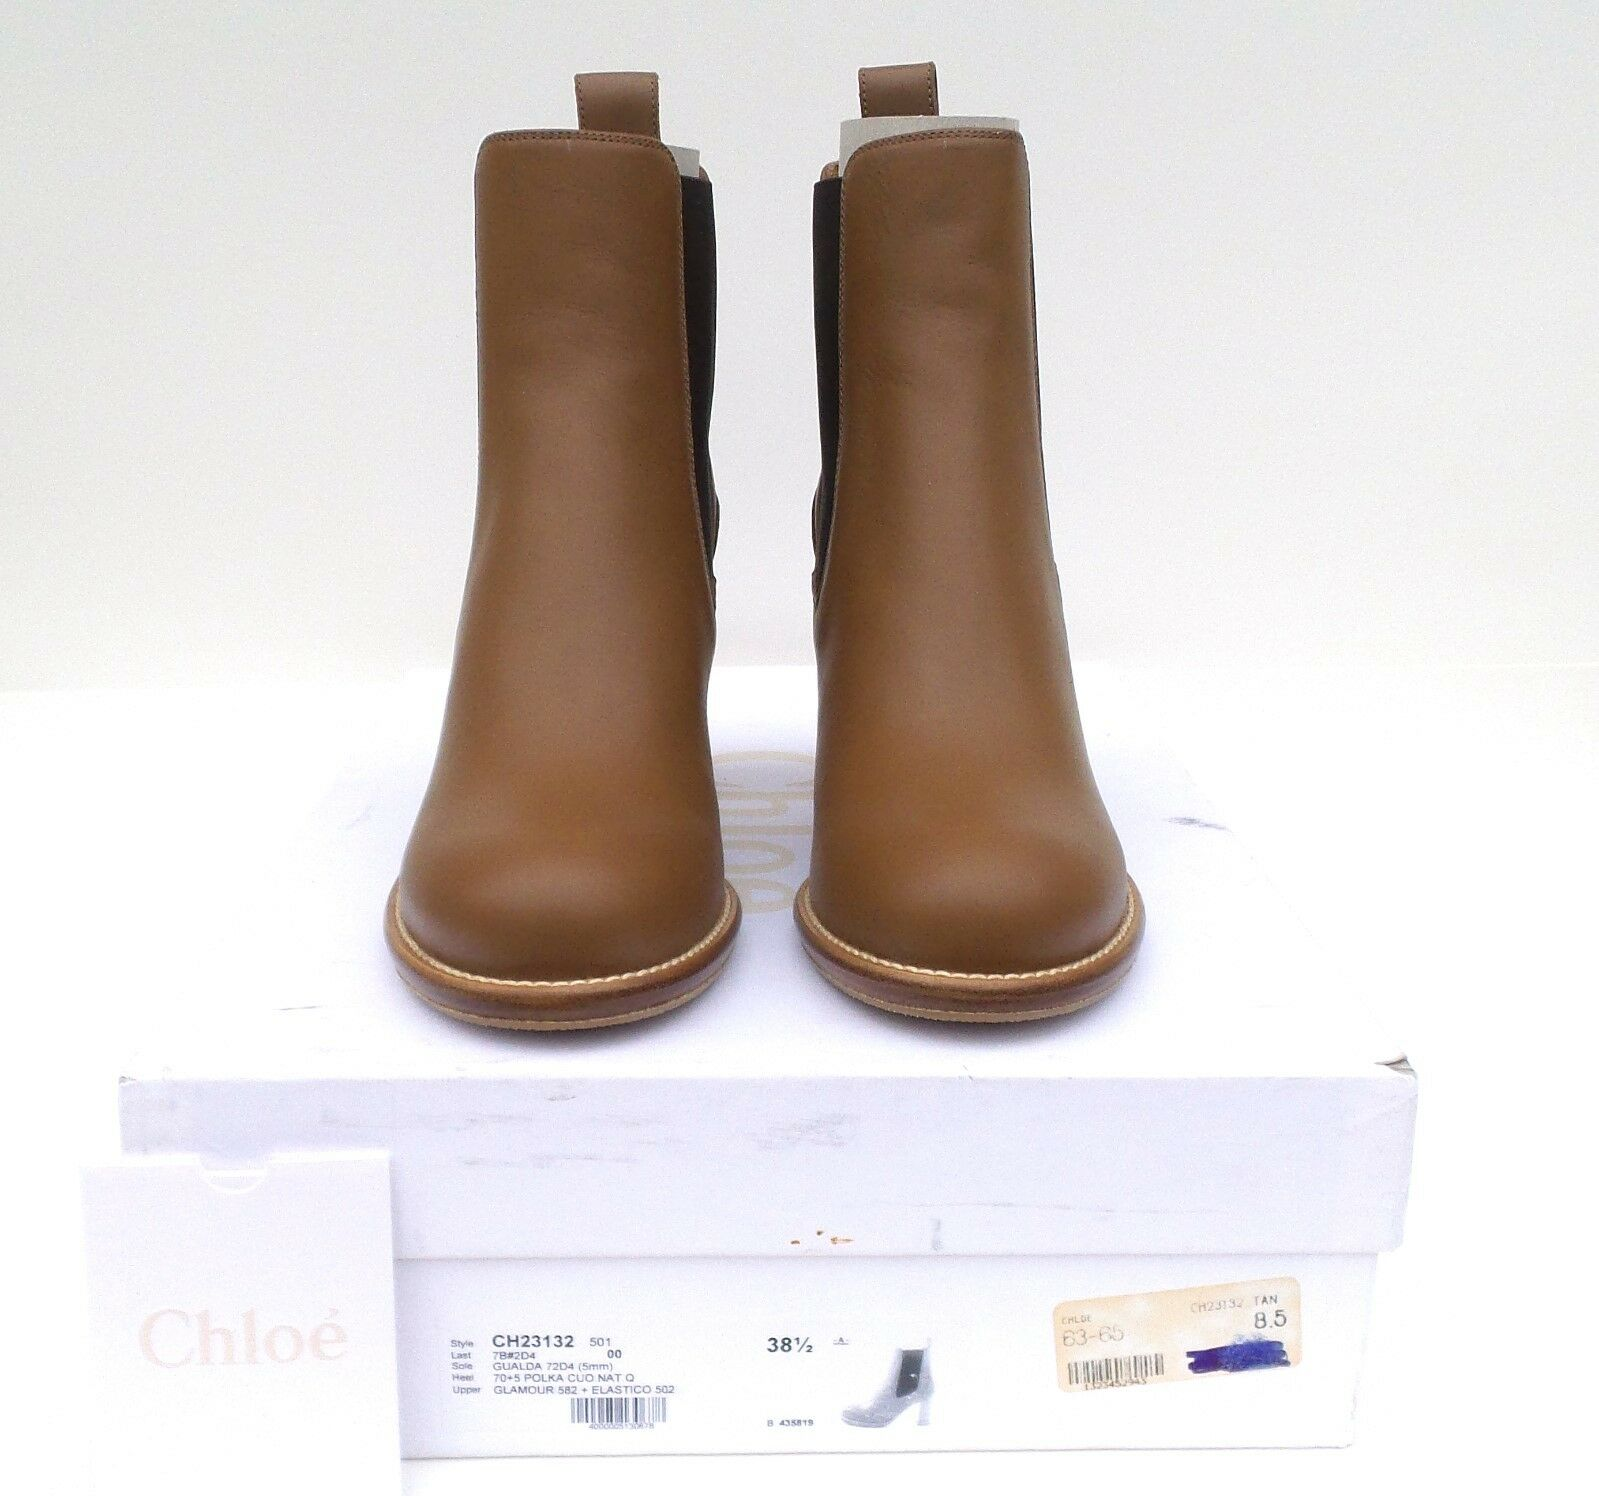 CHLOE Camel Tan Brown Leather Round Toe Stacked Block Heel Ankle Boots 385 NWB